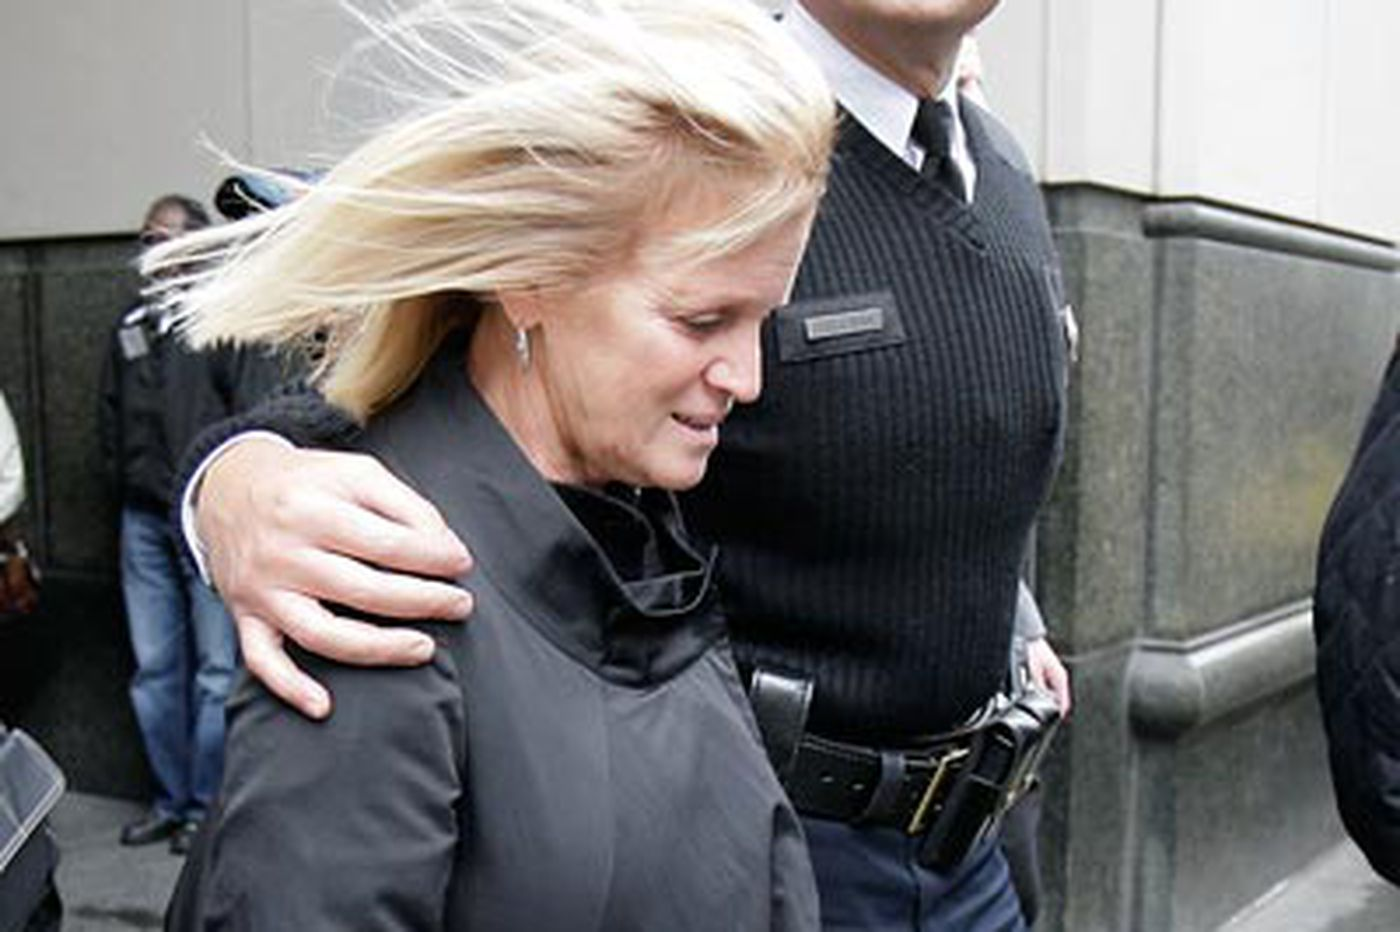 Killer cries out to Chuck Cassidy's grieving widow: 'I APOLOGIZE'